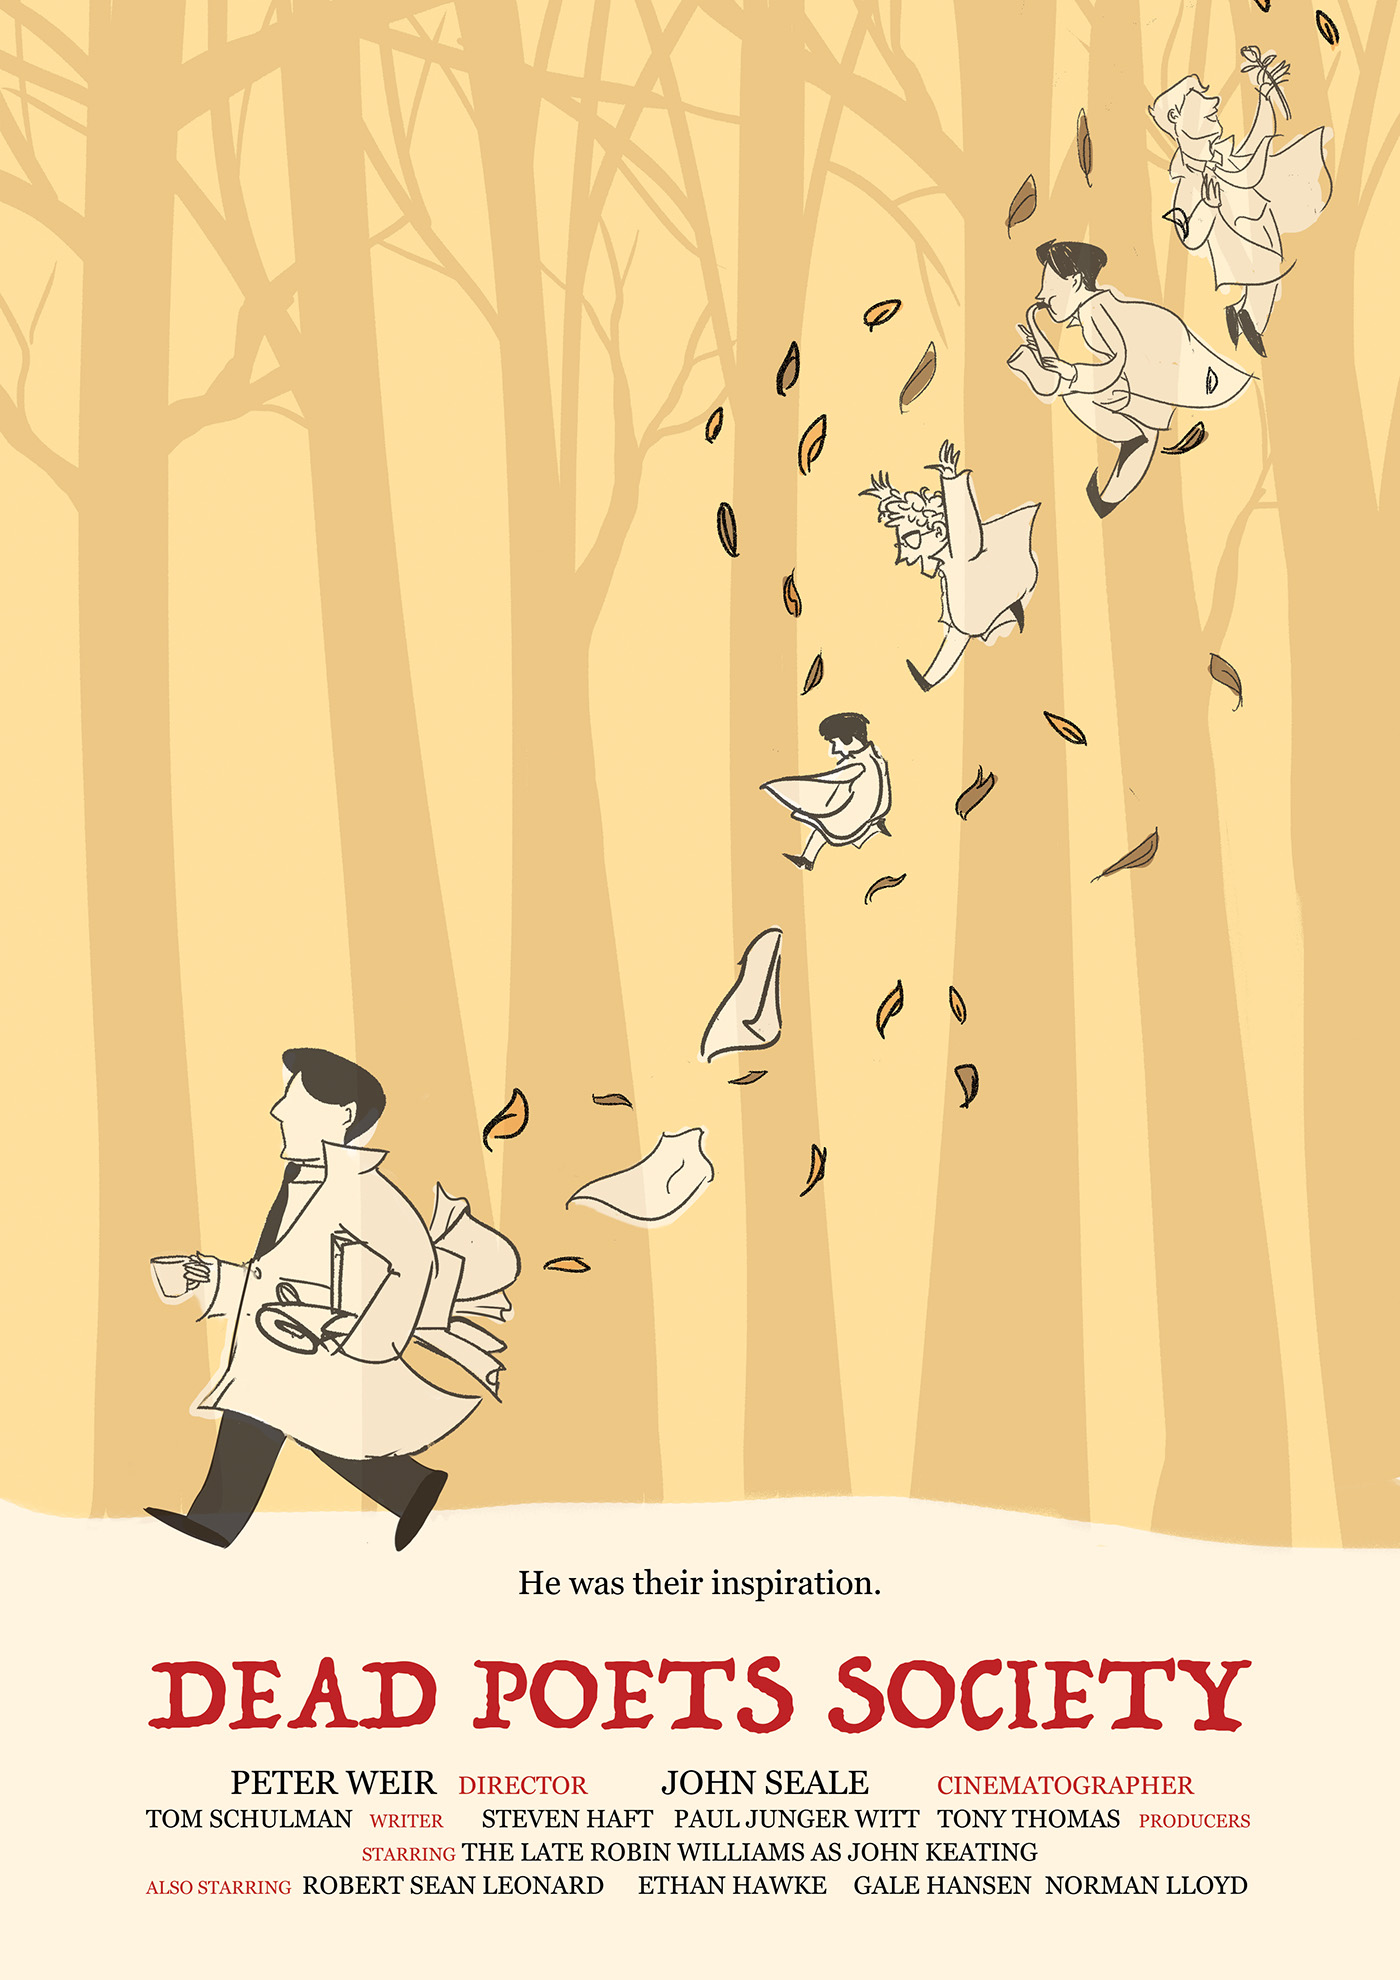 Dead-Poets-Society-movie-poster-wallpaper-wp5604284